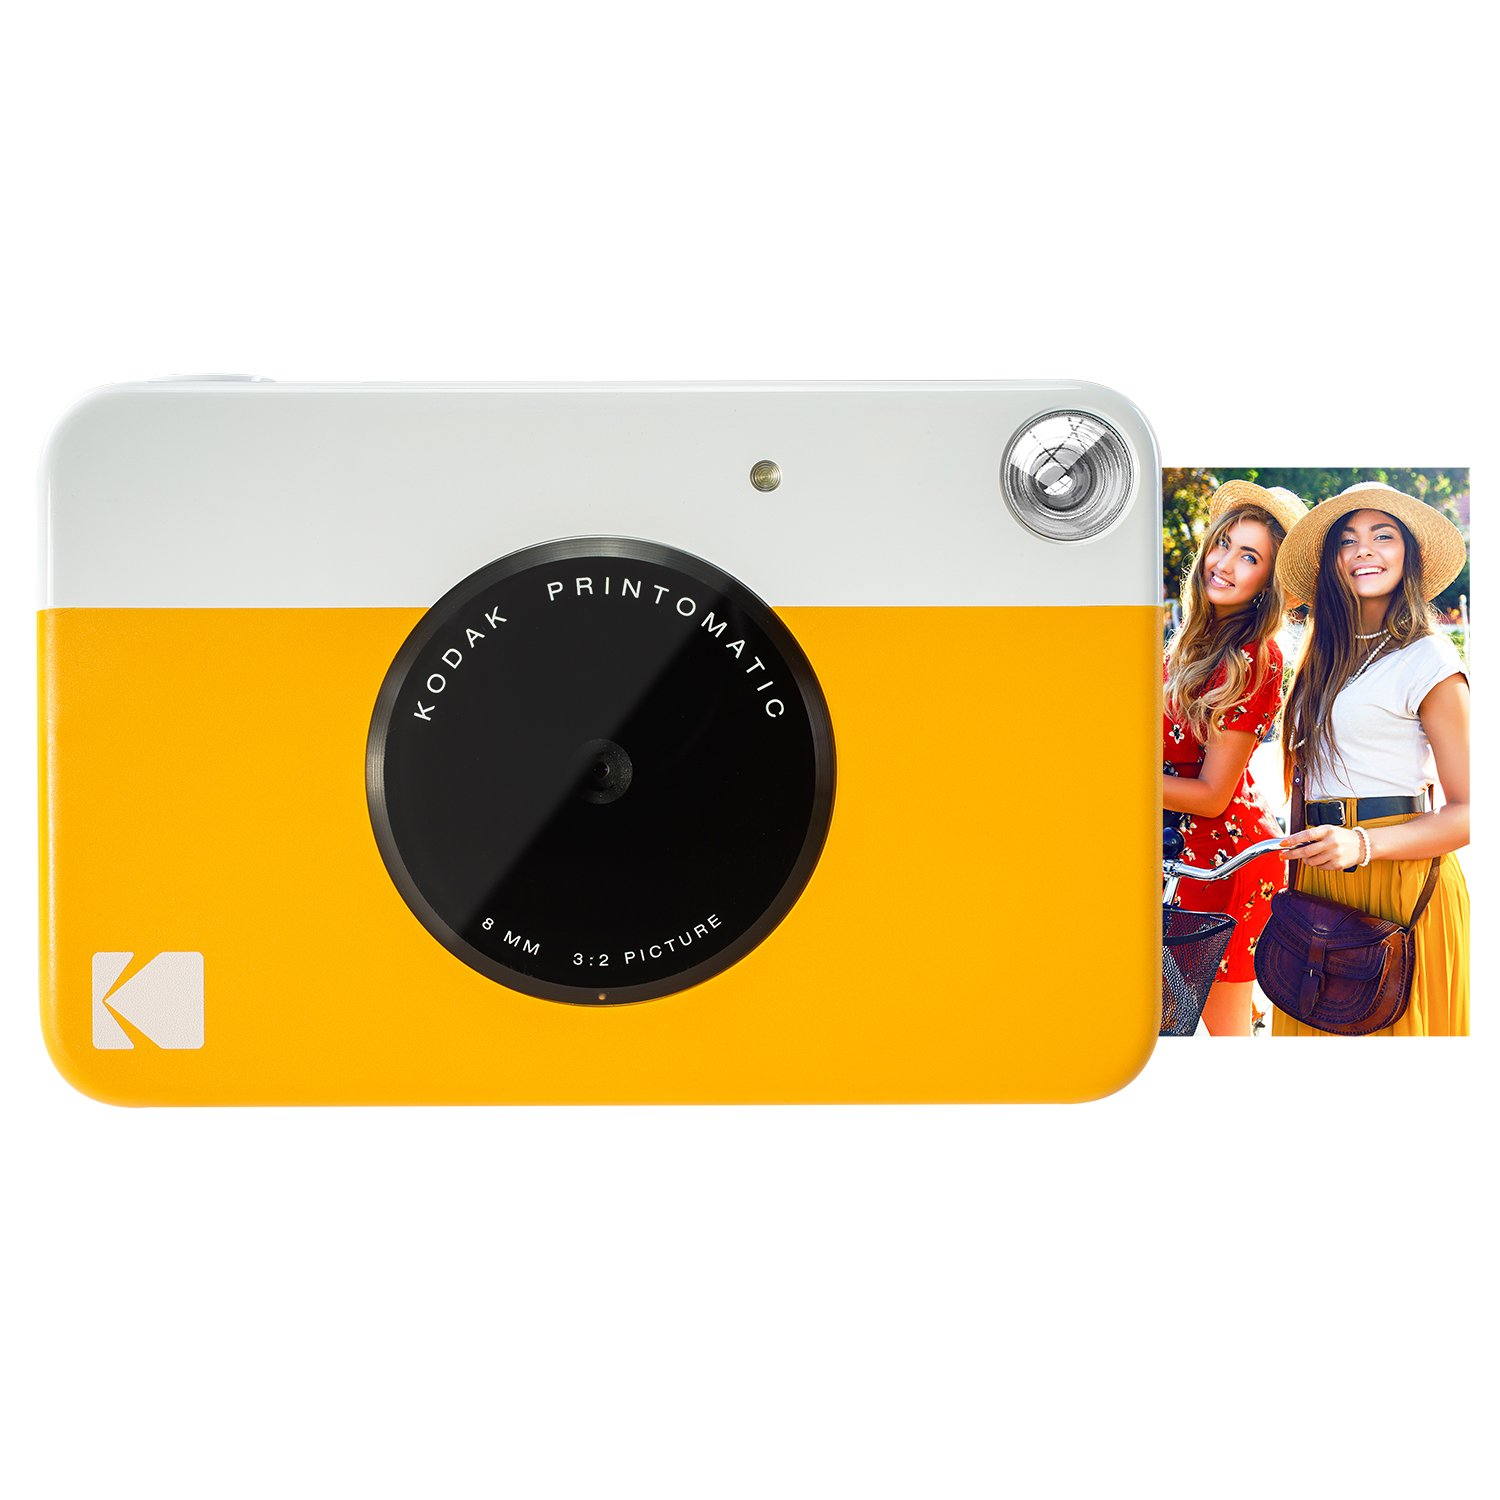 Kodak PRINTOMATIC Review